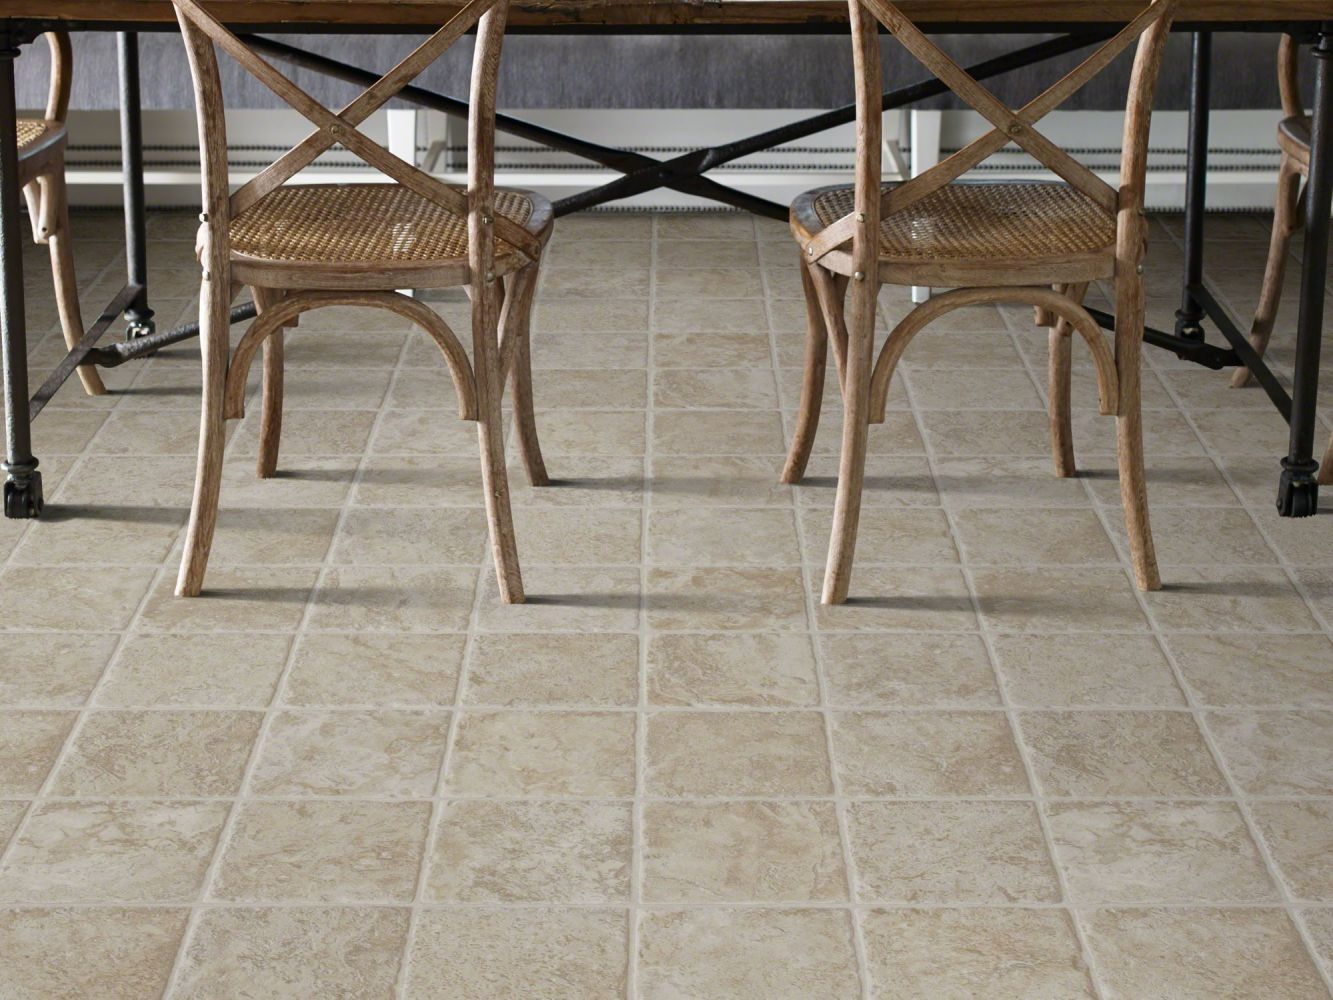 Shaw Floors Resilient Property Solutions Pro 12 Classics Gentle White 00137_VG054